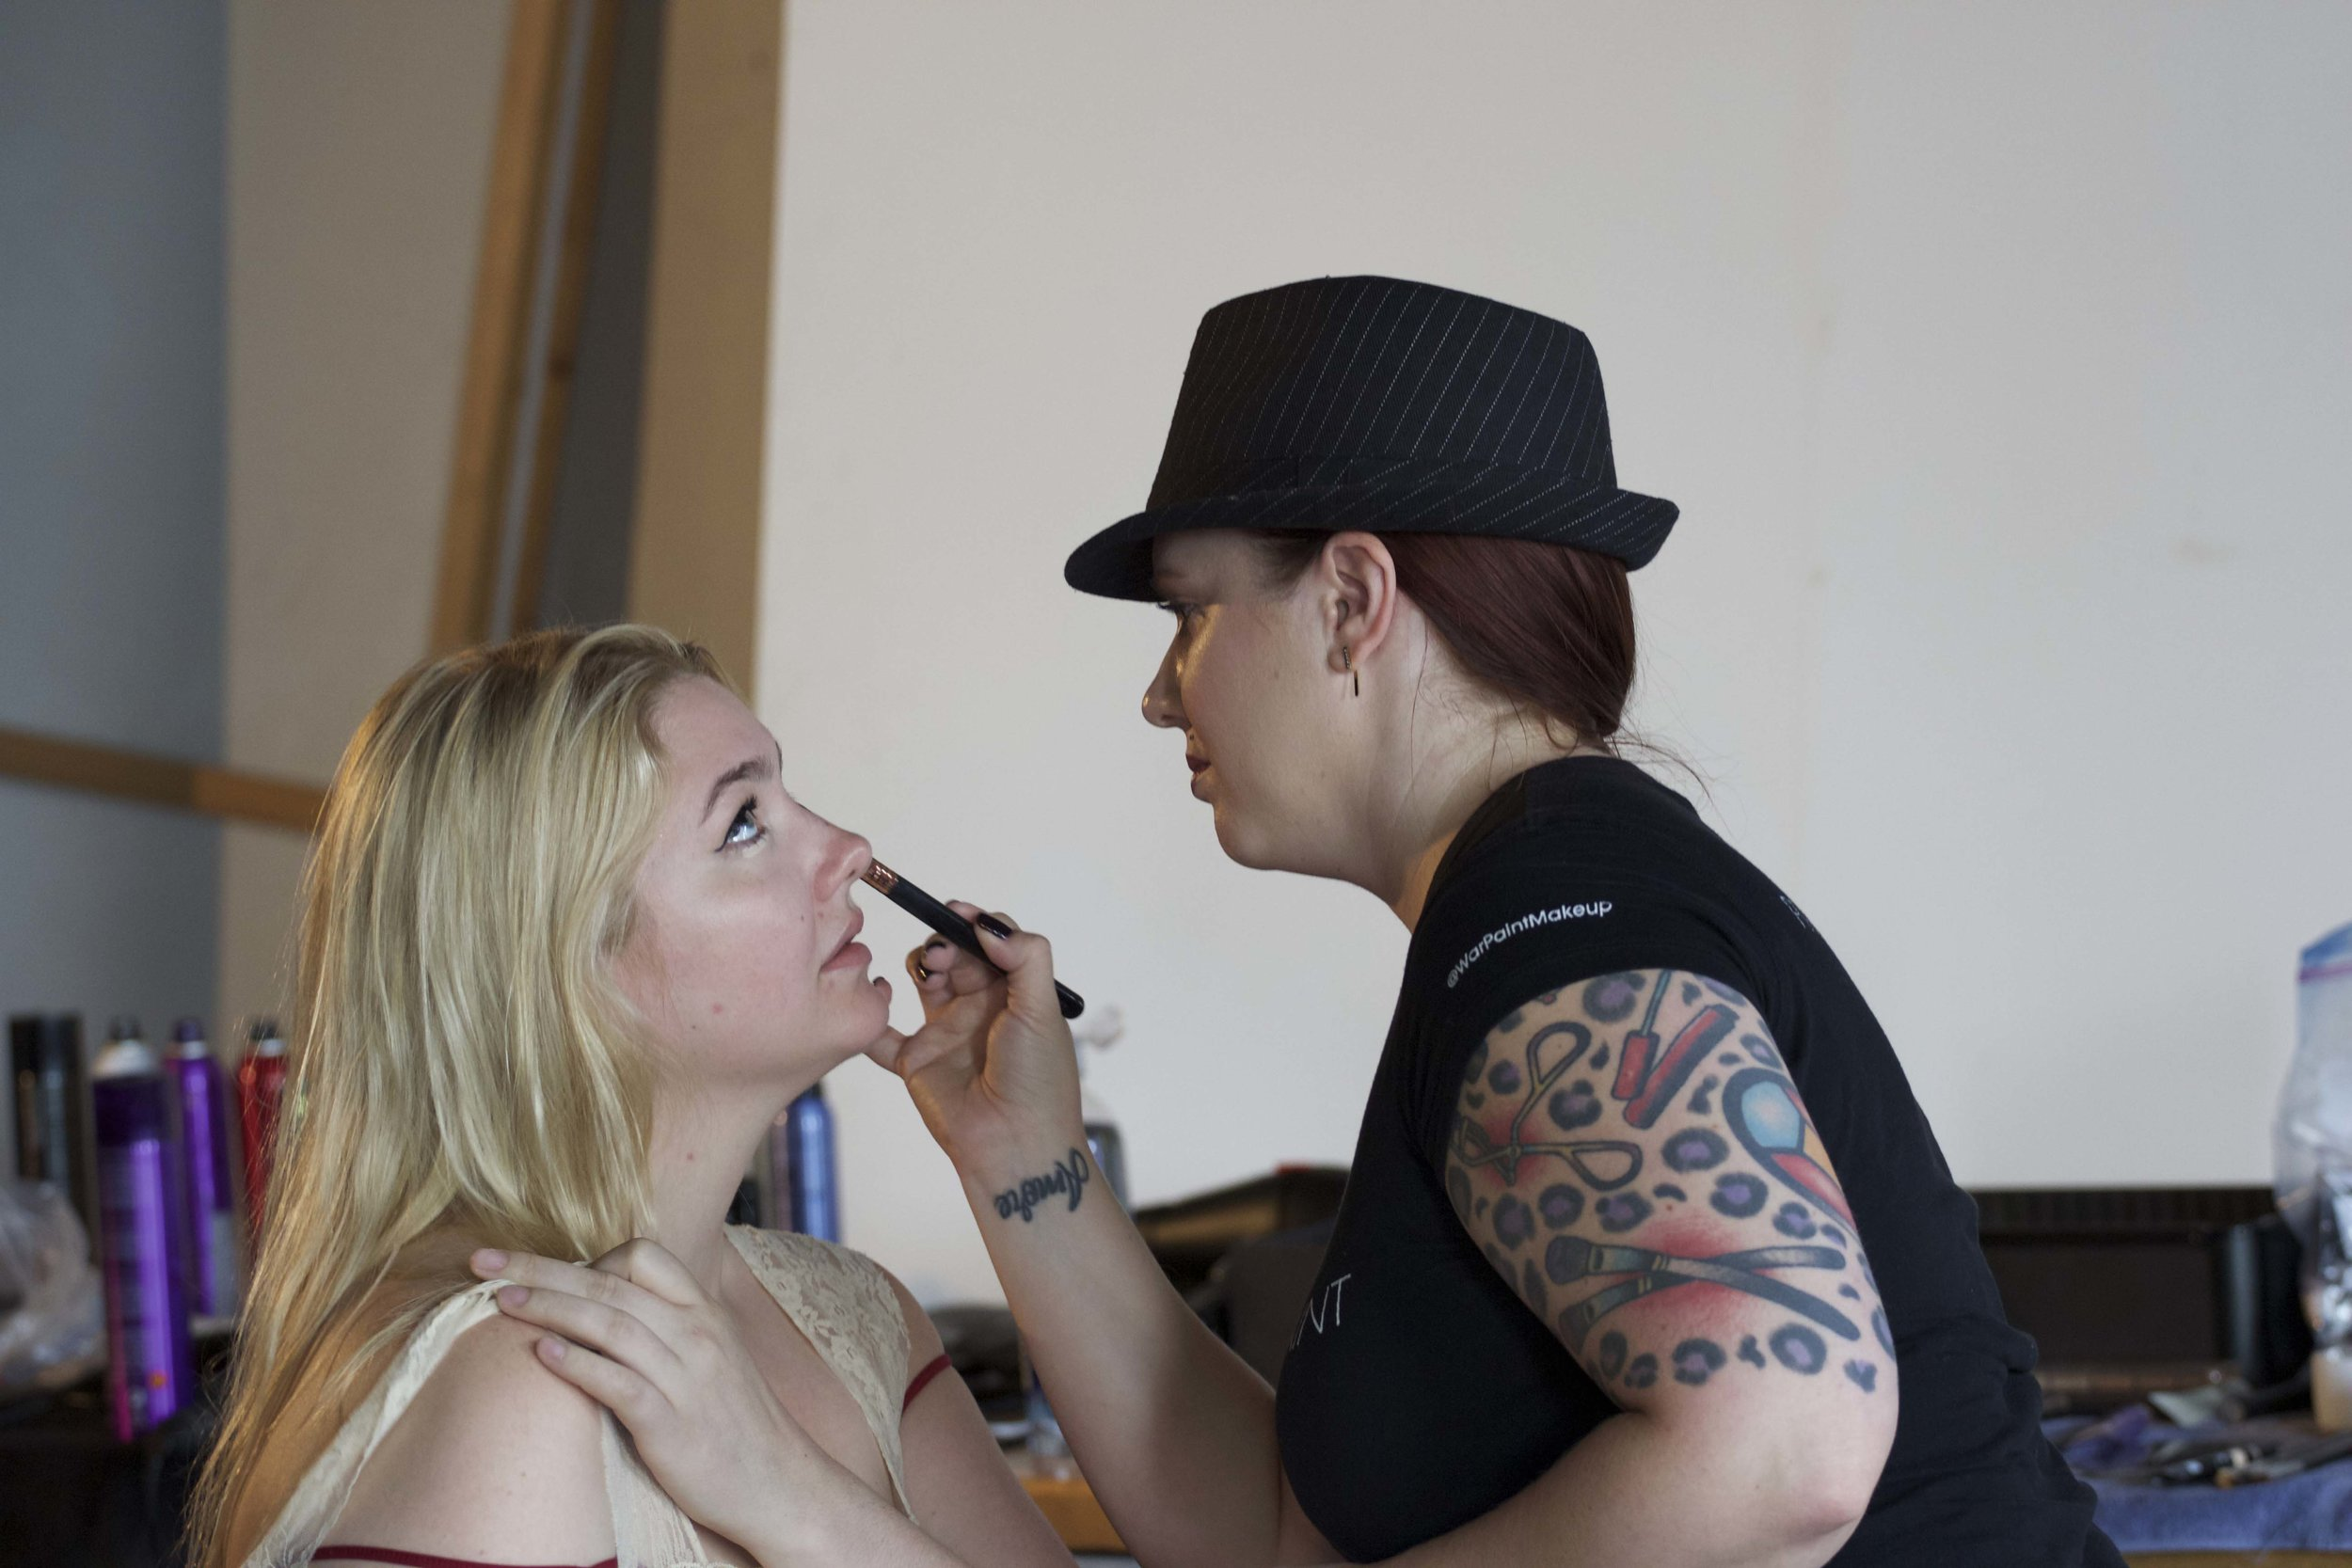 Holiday Makeup looks with Jessica Mae of WarPaint International